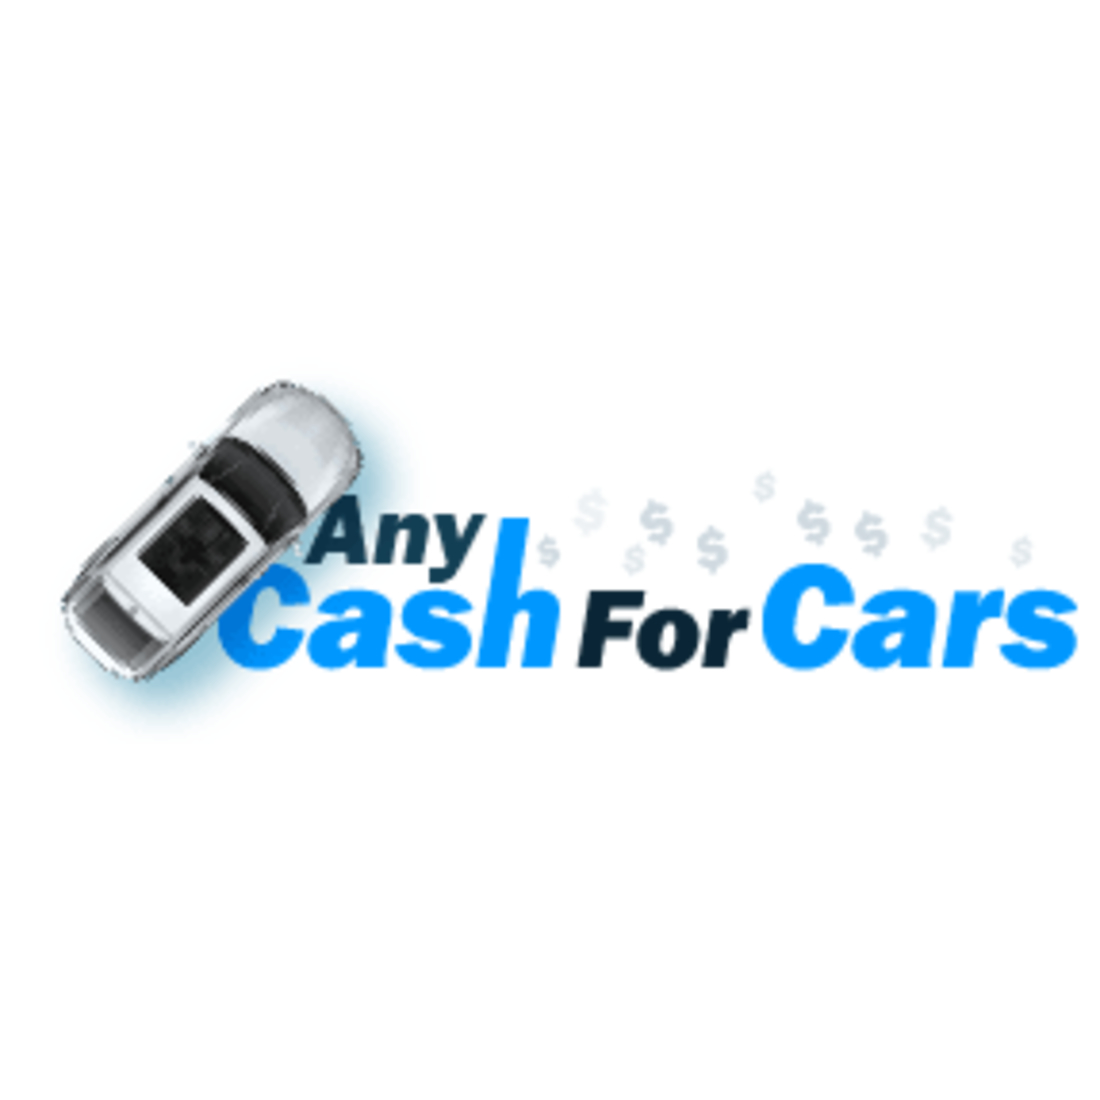 Any Cash for Cars